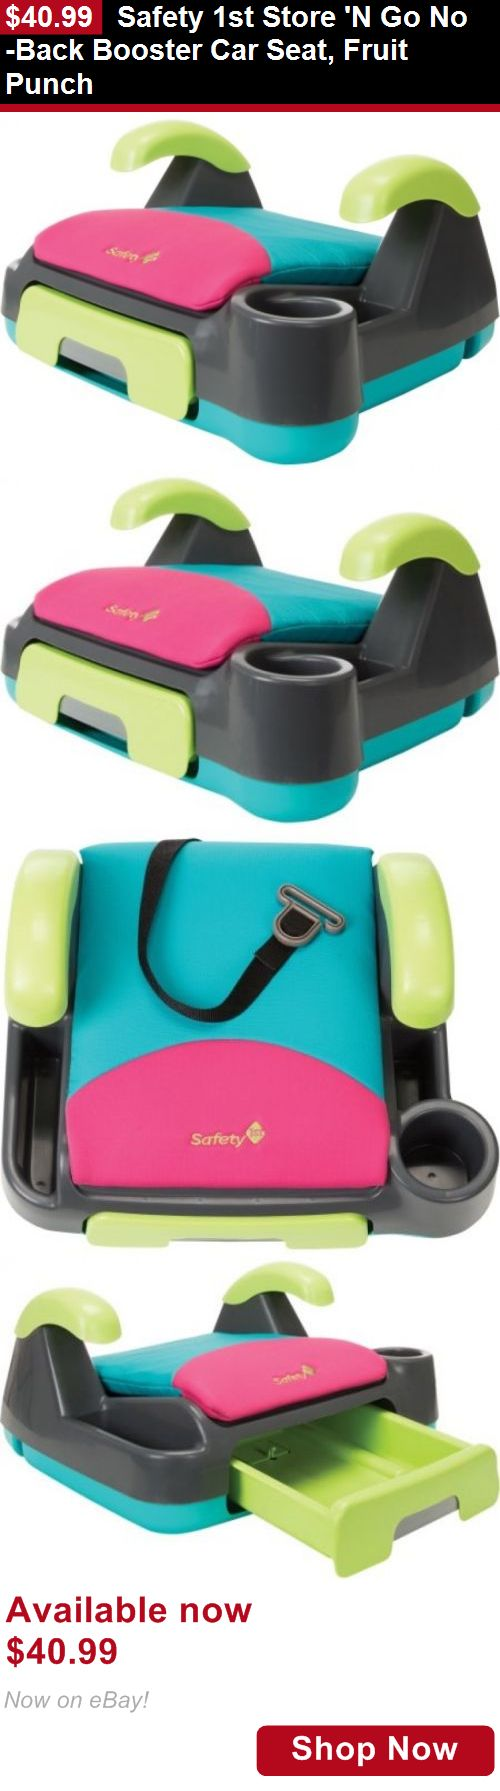 Booster Seats: Safety 1St Store N Go No-Back Booster Car Seat, Fruit ...